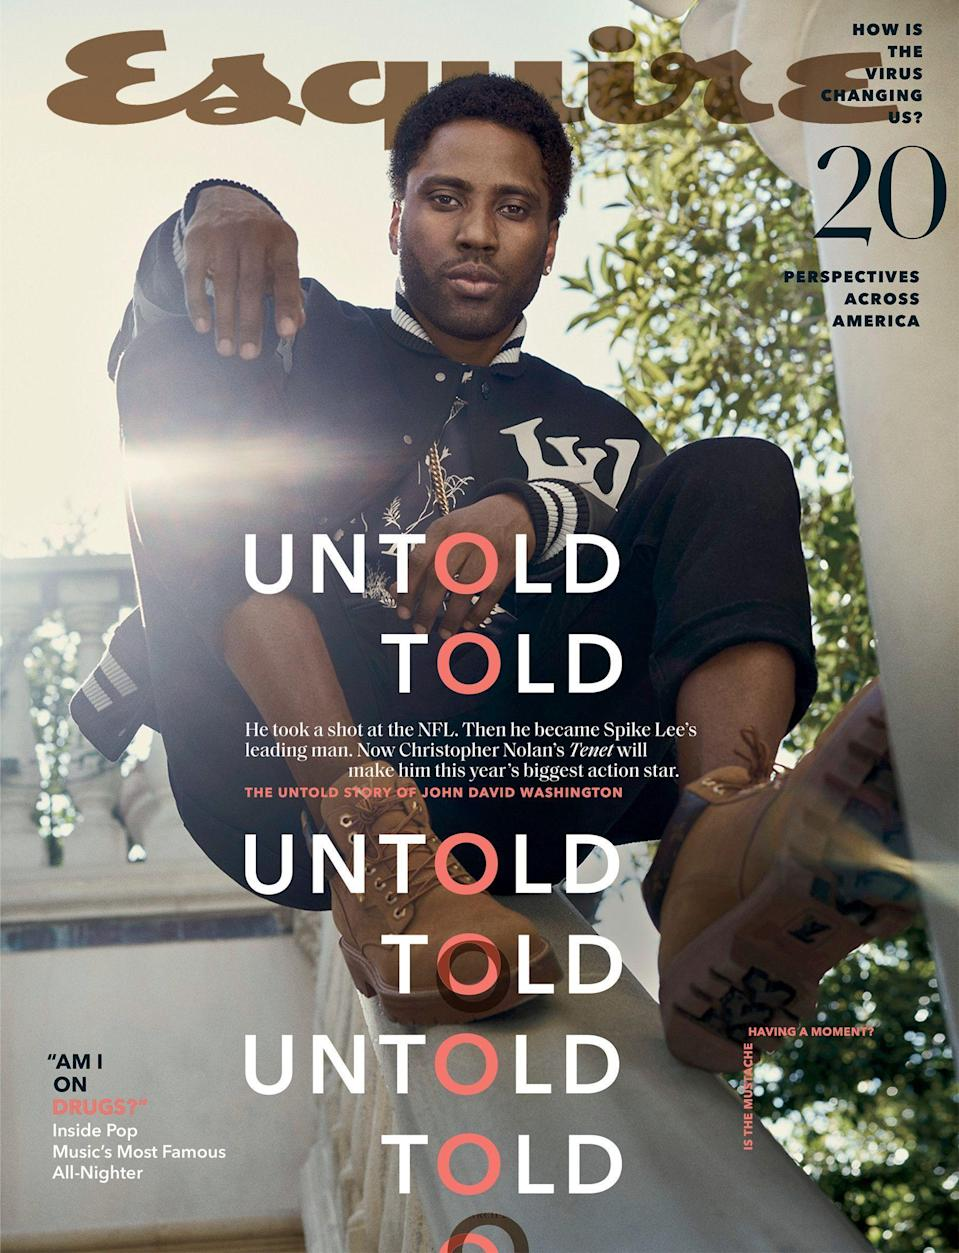 """<p>hearstmags.com</p><p><a href=""""https://subscribe.hearstmags.com/subscribe/splits/esquire/esq_sub_nav_link"""" rel=""""nofollow noopener"""" target=""""_blank"""" data-ylk=""""slk:One Year for $15"""" class=""""link rapid-noclick-resp"""">One Year for $15</a></p>"""